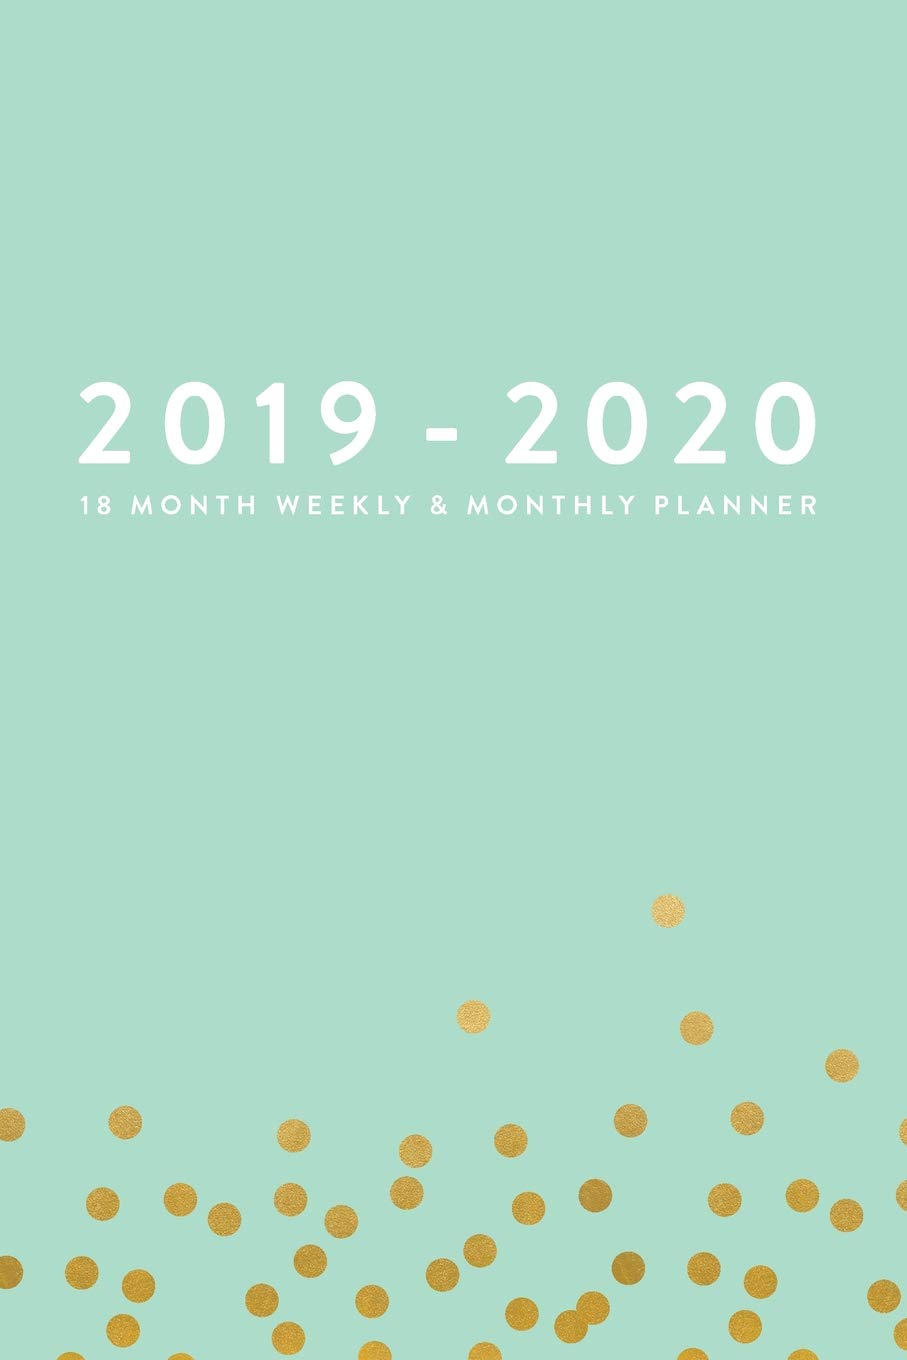 2019 - 2020, 18 Month Weekly & Monthly Planner: Mint Green with ...